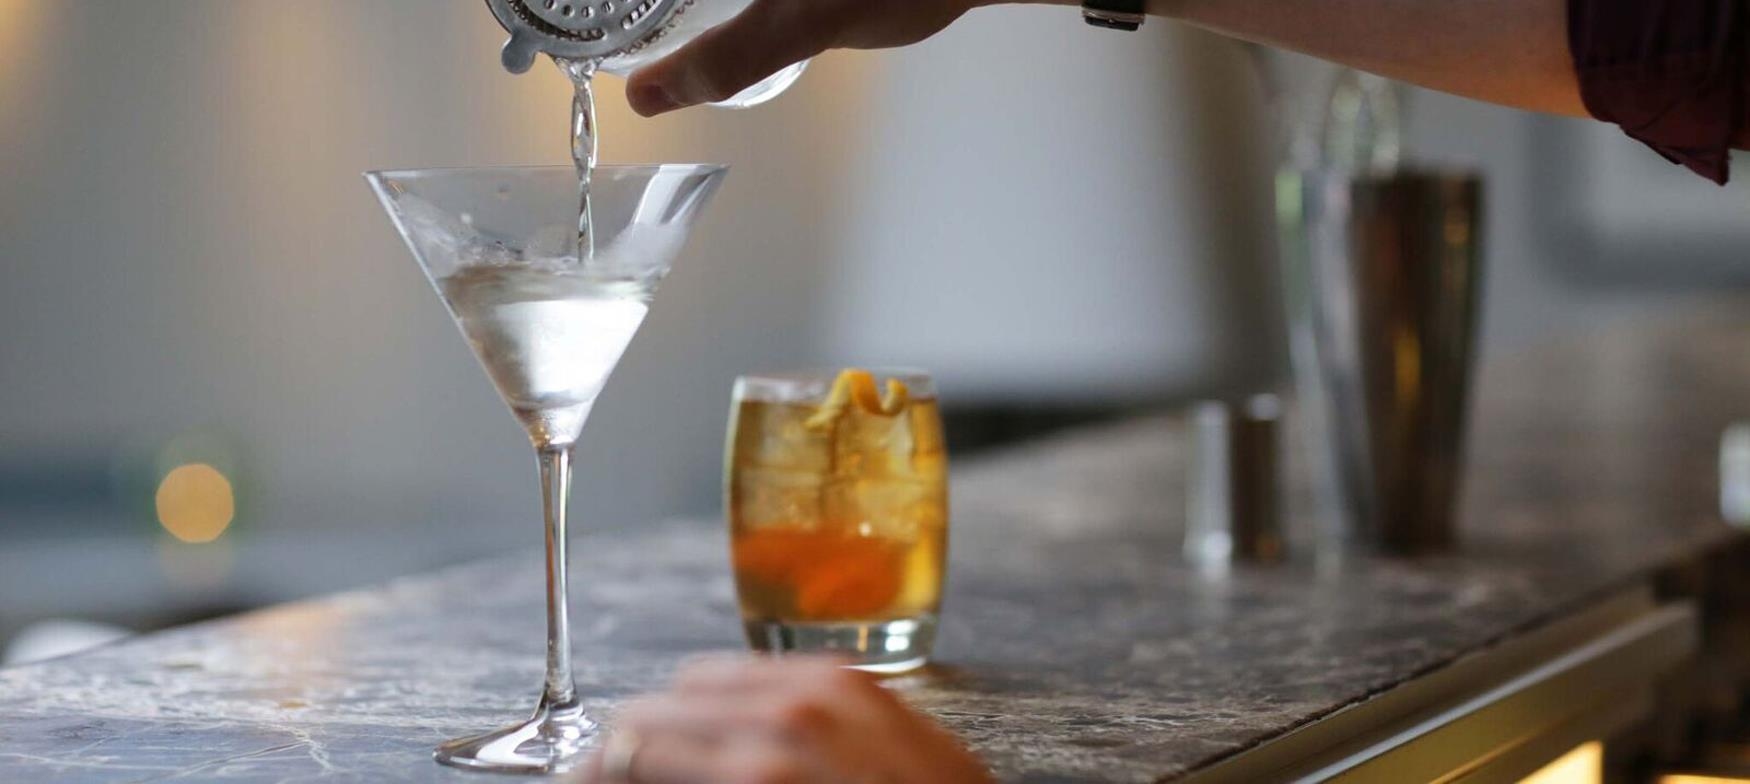 Treat yourself to a cocktail in a trendy city bar